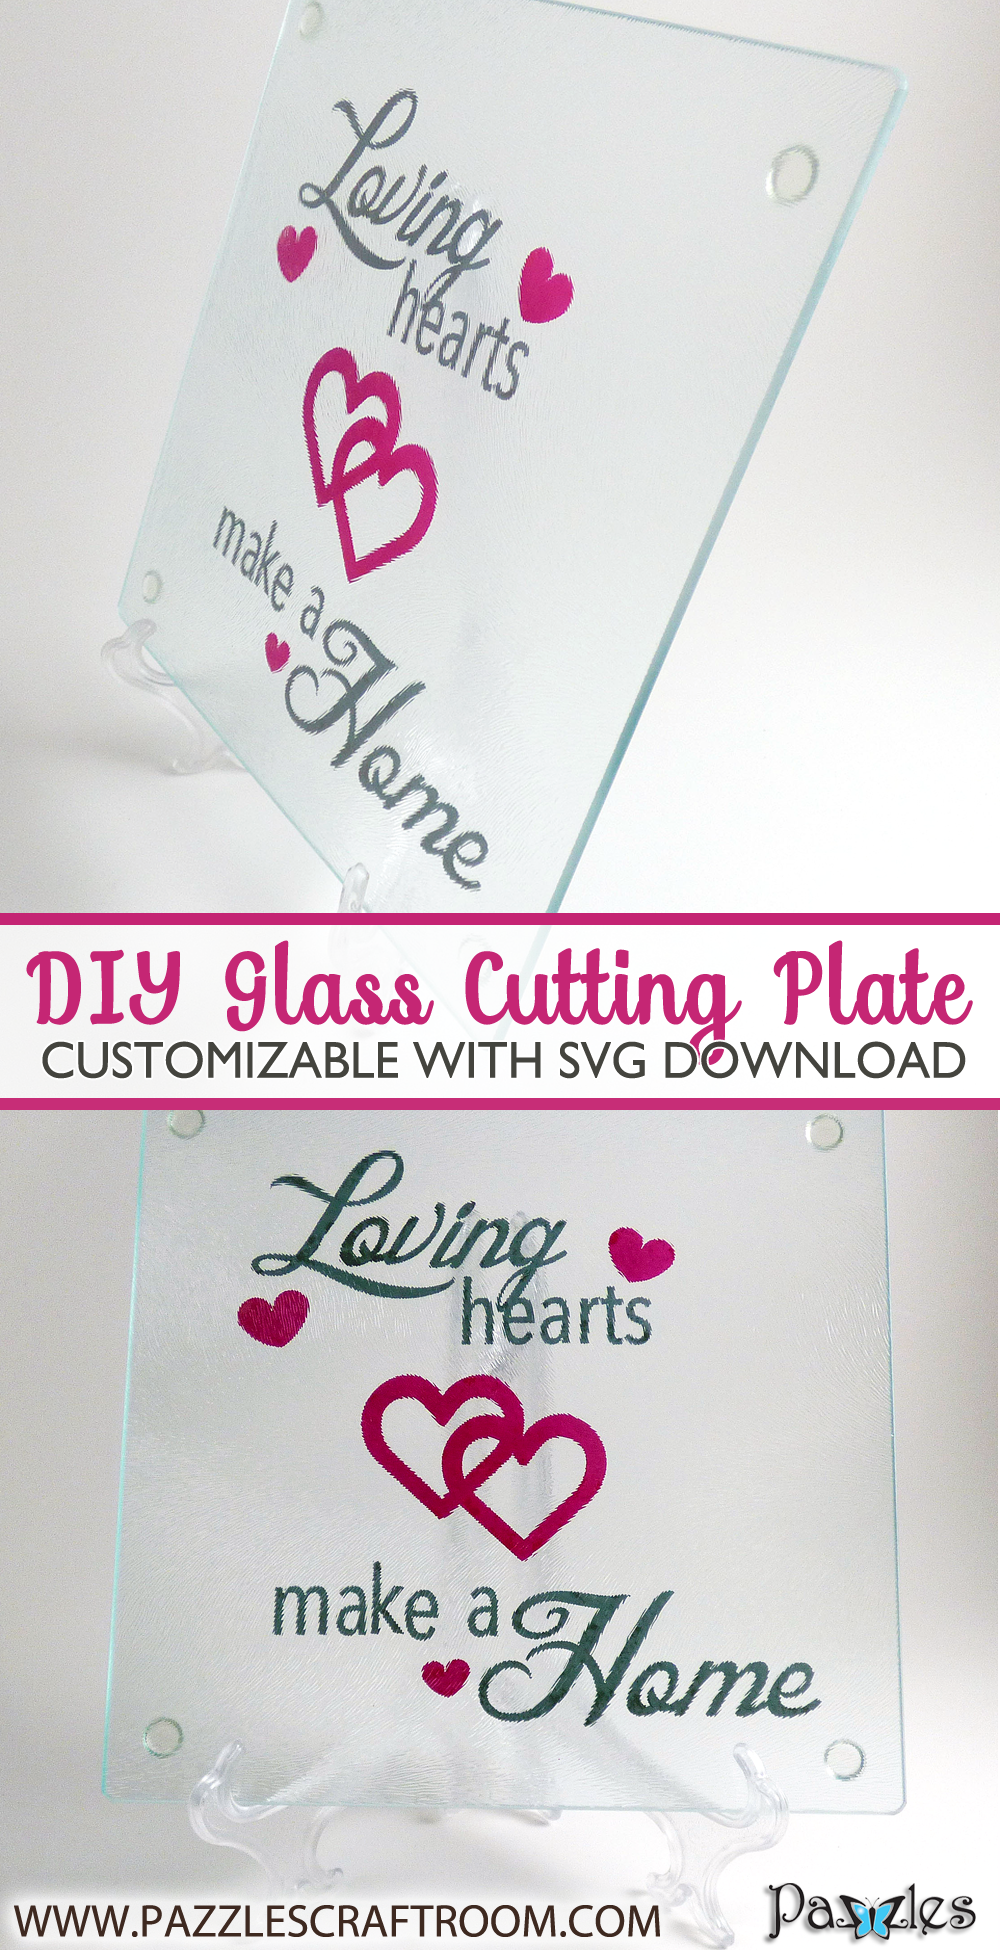 Pazzles DIY Cutting Plate with SVG instant download. Compatible with all major electronic cutters including Pazzles Inspiration, Cricut, and Silhouette Cameo.